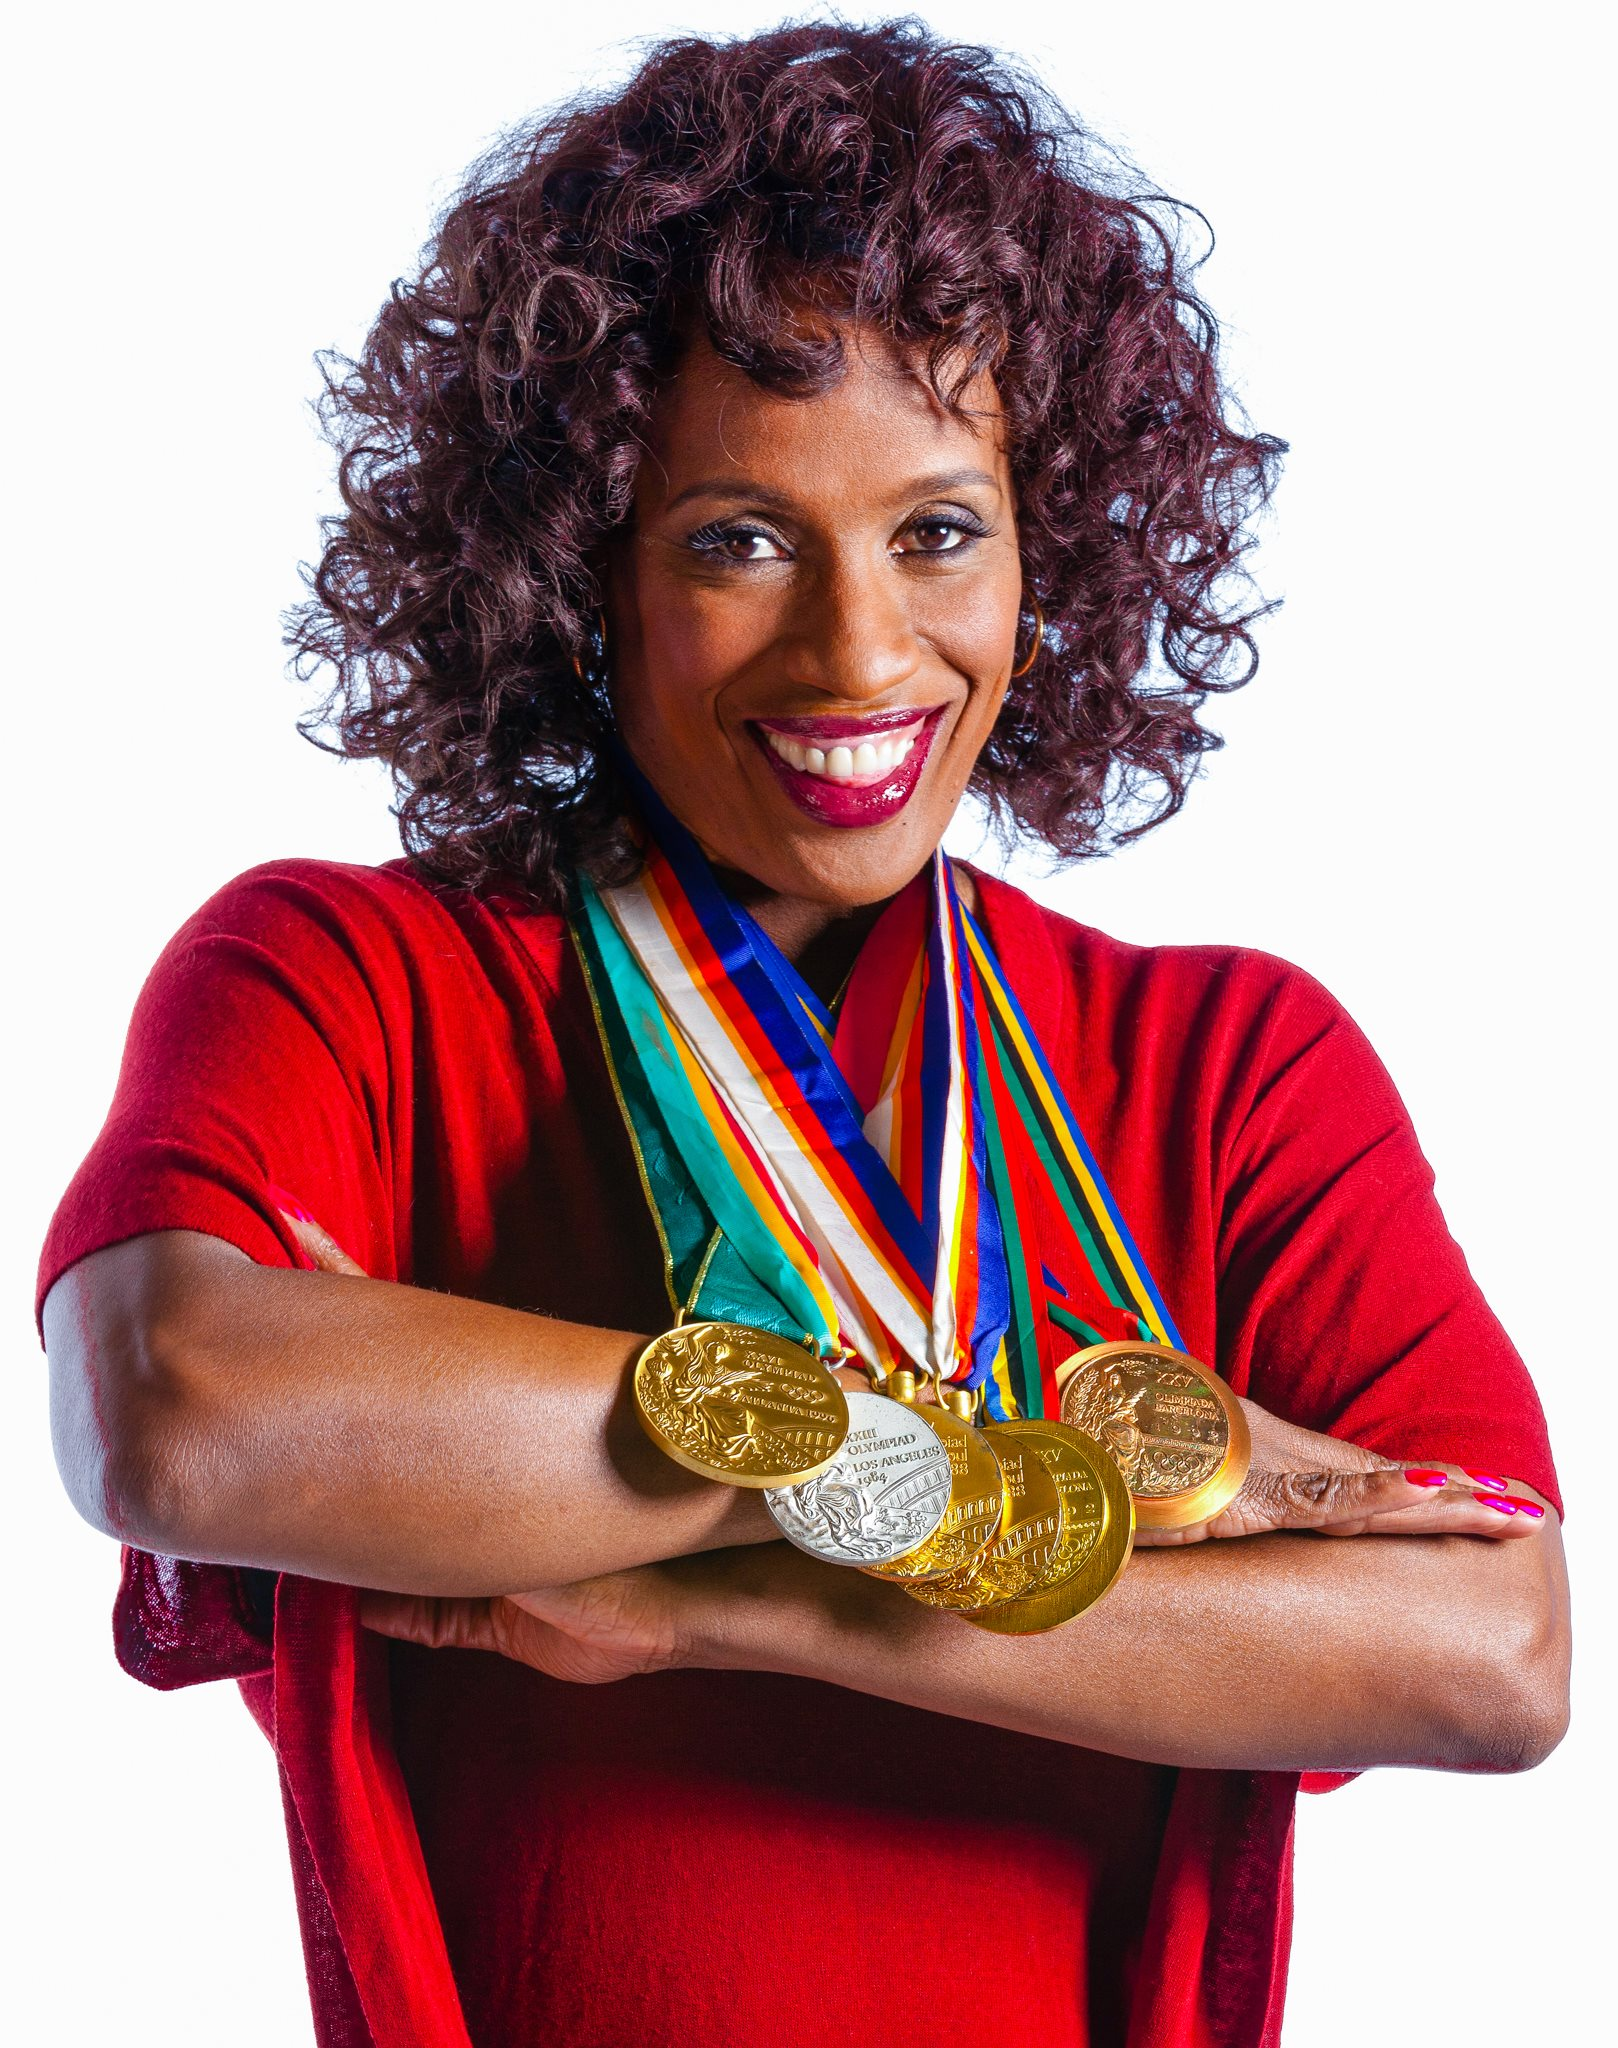 Jackie joyner kersee on monique show bet ascot gold cup 2021 betting sites